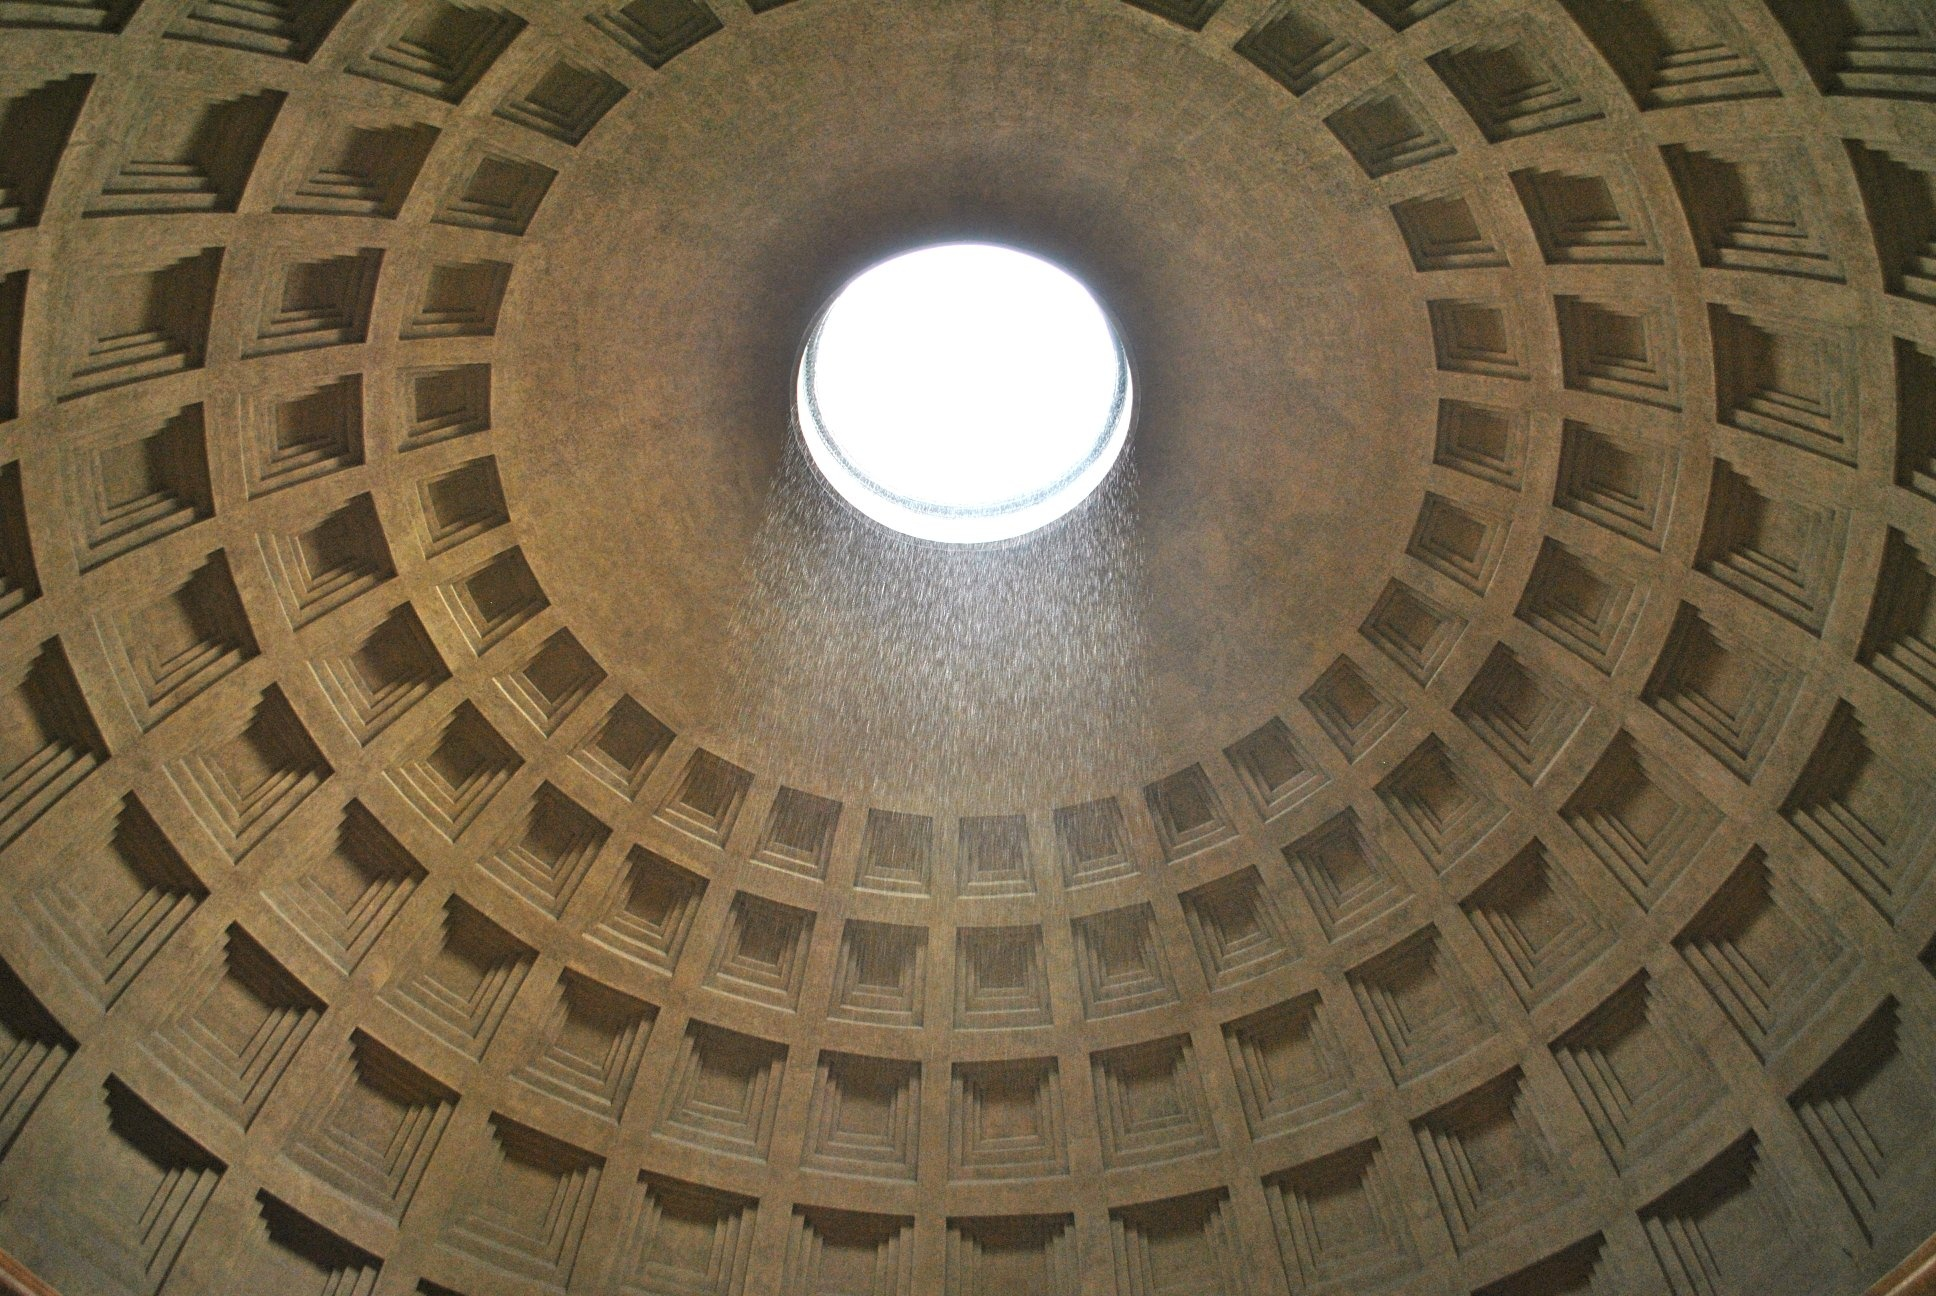 Is the oculus of the Pantheon covered in a very big circular